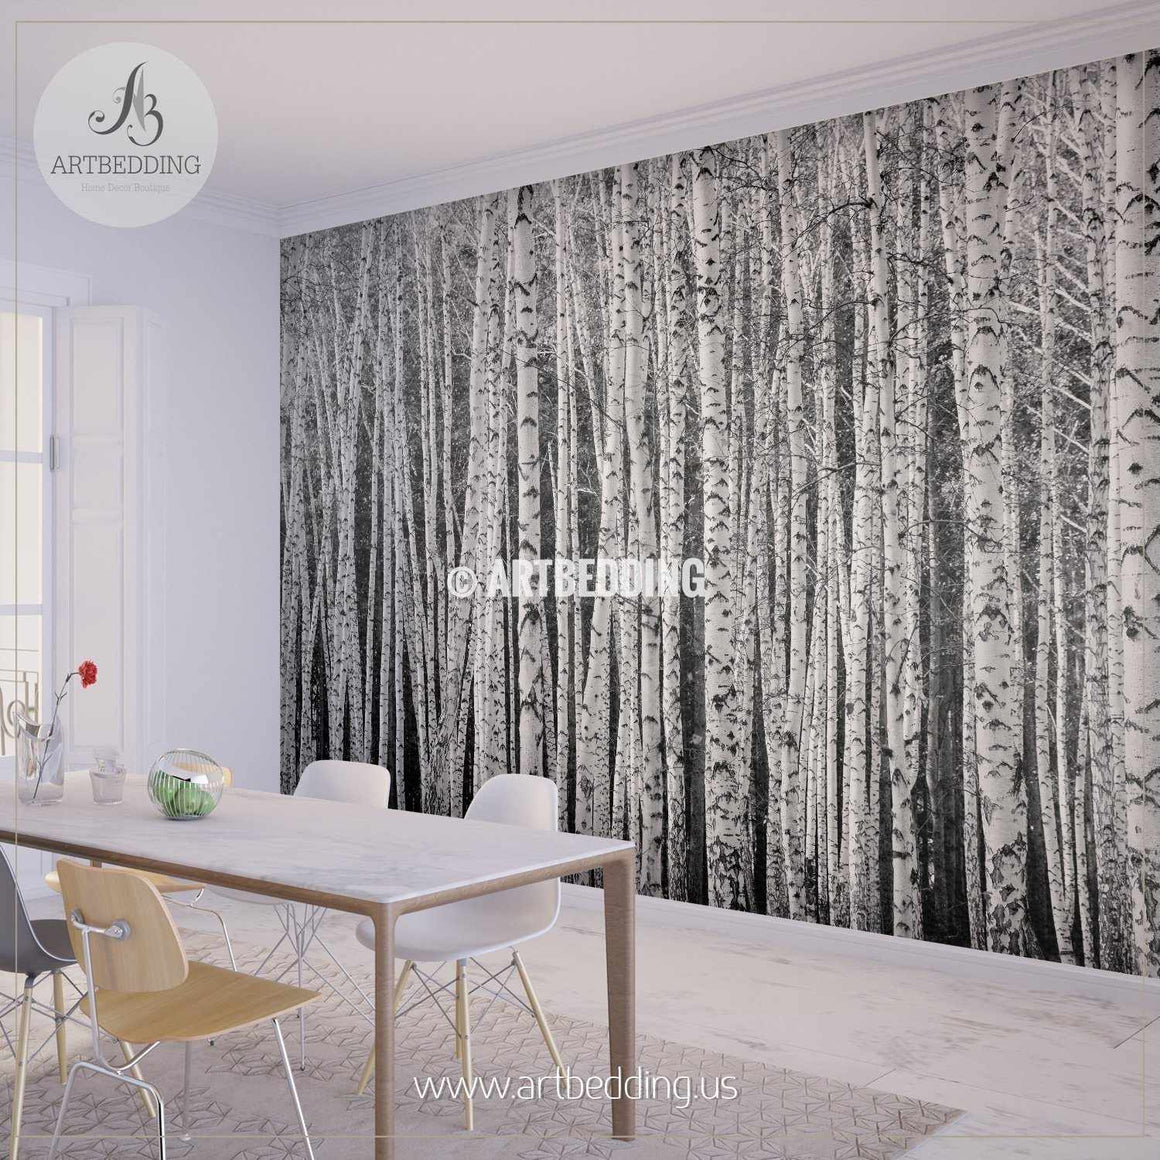 Birch forest, black and white Self Adhesive Peel & Stick, Nature wall mural wall mural